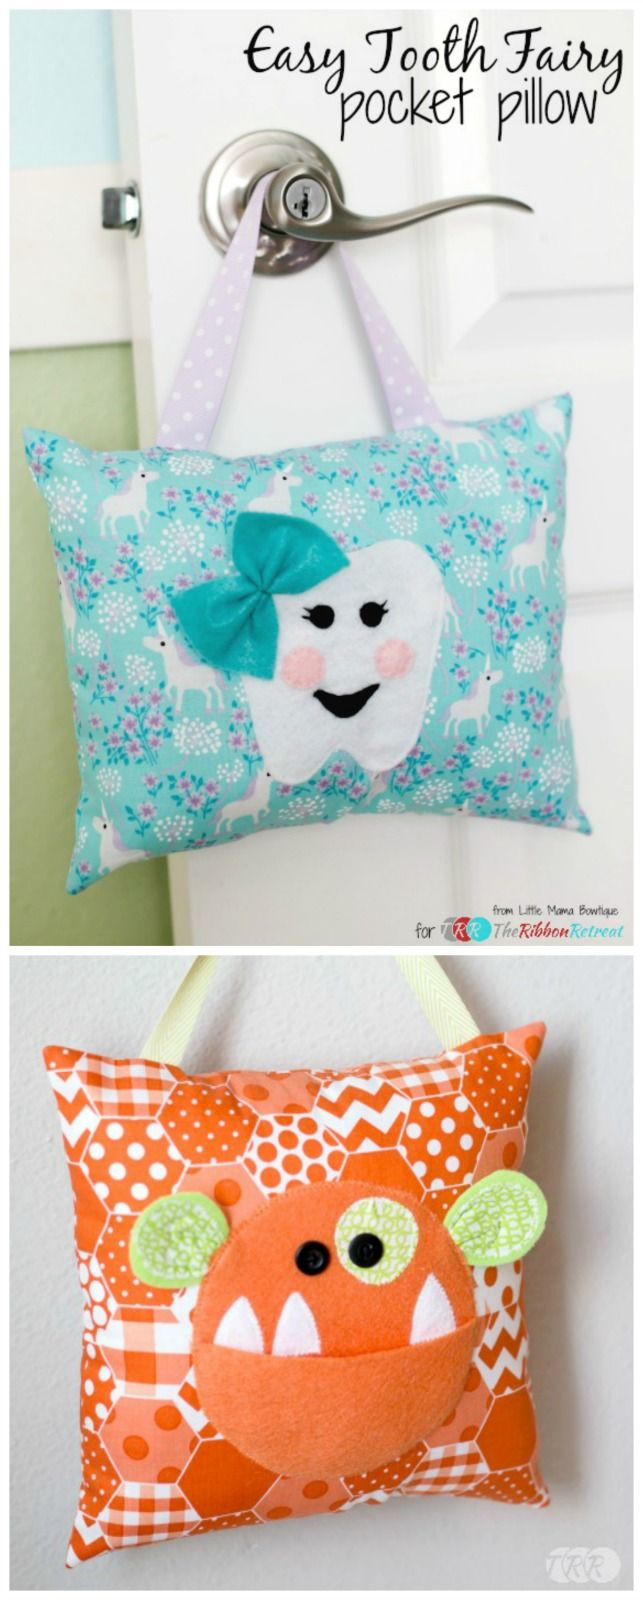 Horse shaped pillows for children - Easy Tooth Fairy Pocket Pillow The Ribbon Retreat Blog